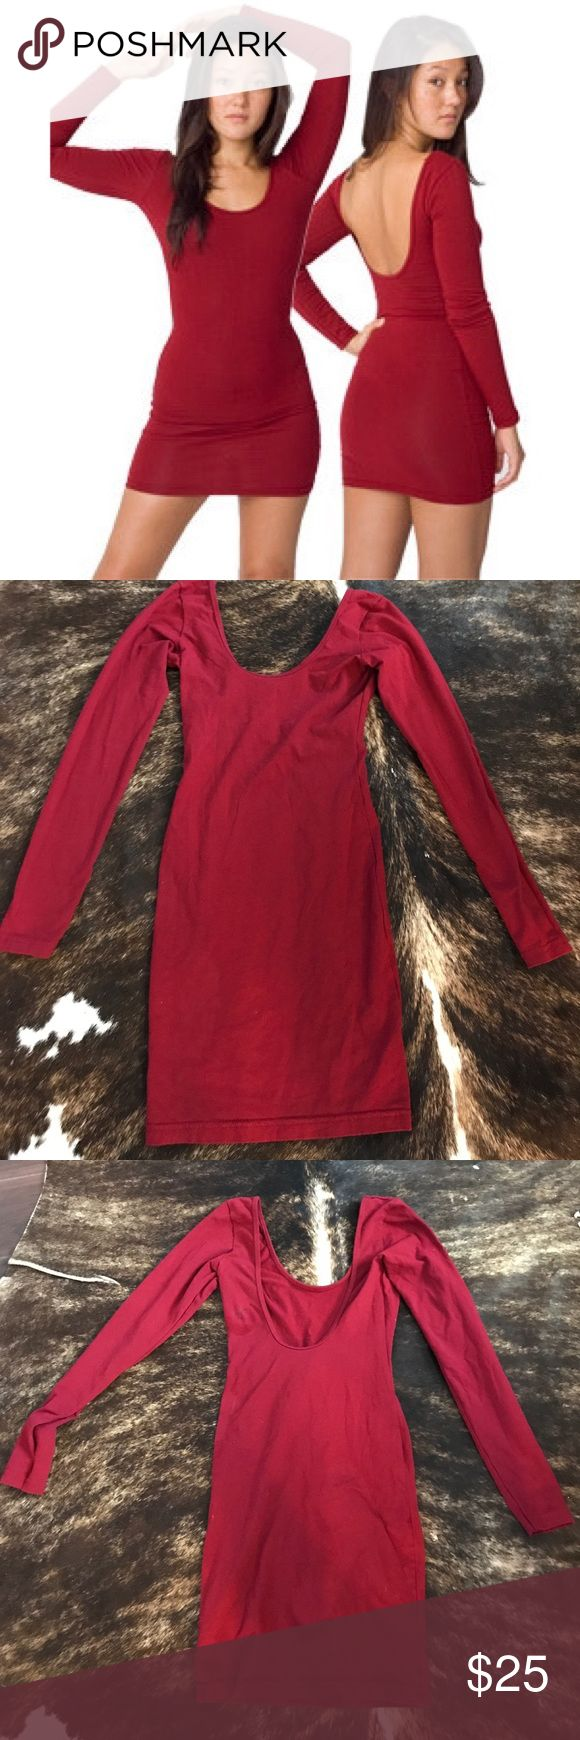 Scoop back American Apparel red dress Dress this one up or down! Form fitting and rare blood red color ❤️. Small spot on back shoulder Dresses Mini